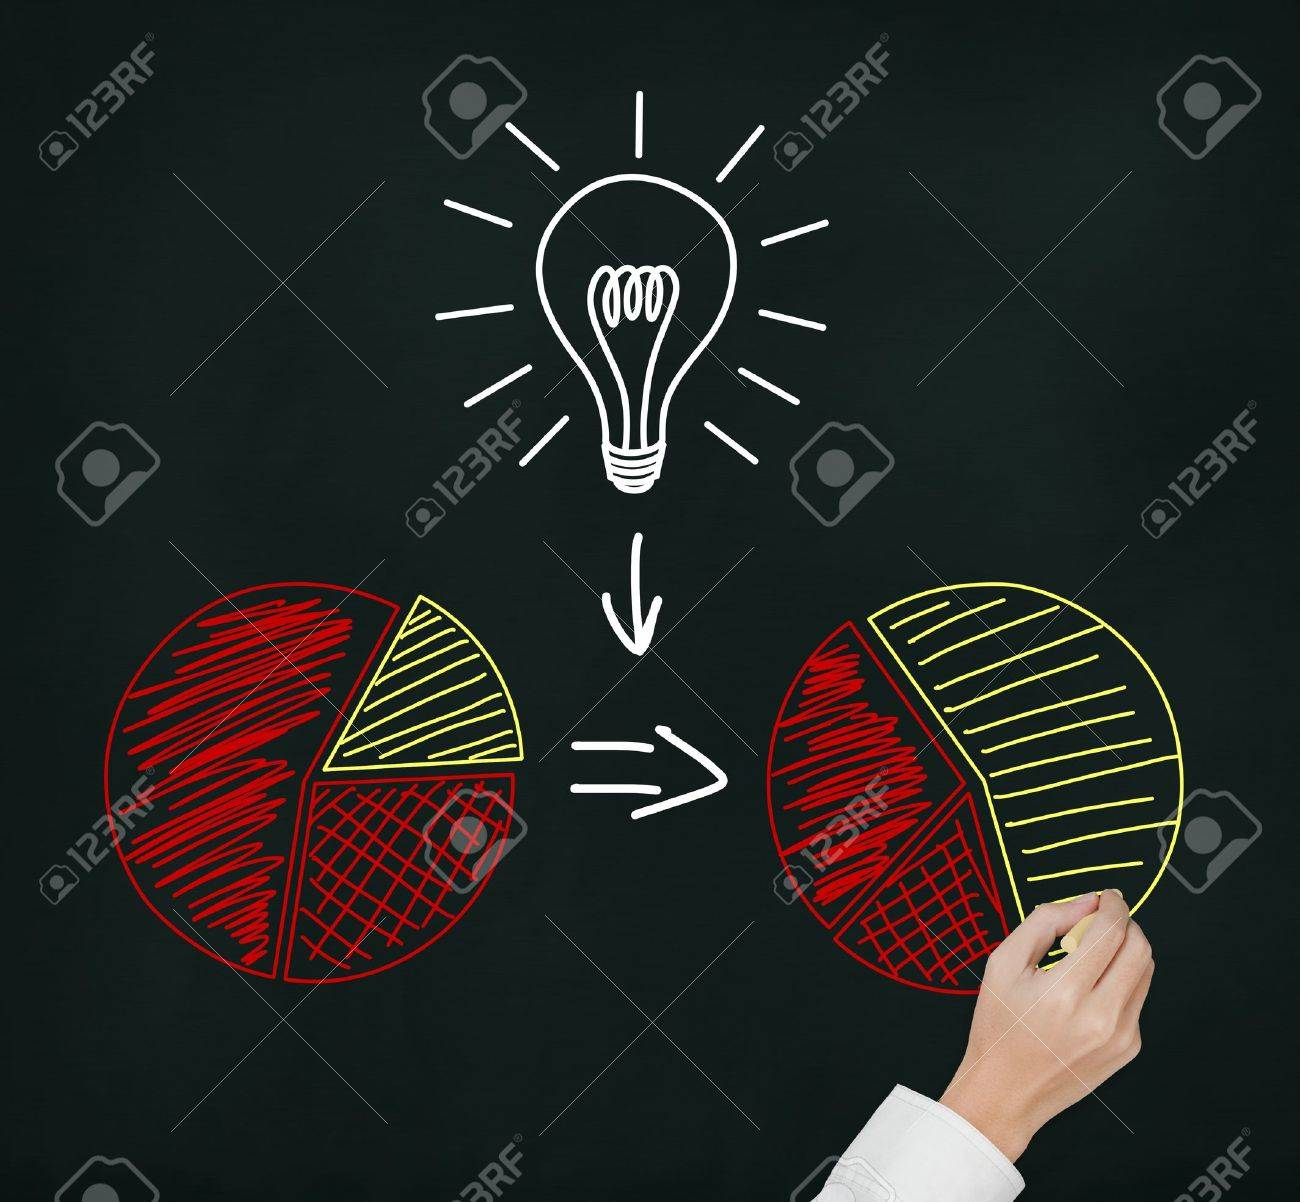 hand drawing concept of good idea or innovation can change percent of market share Stock Photo - 13417119